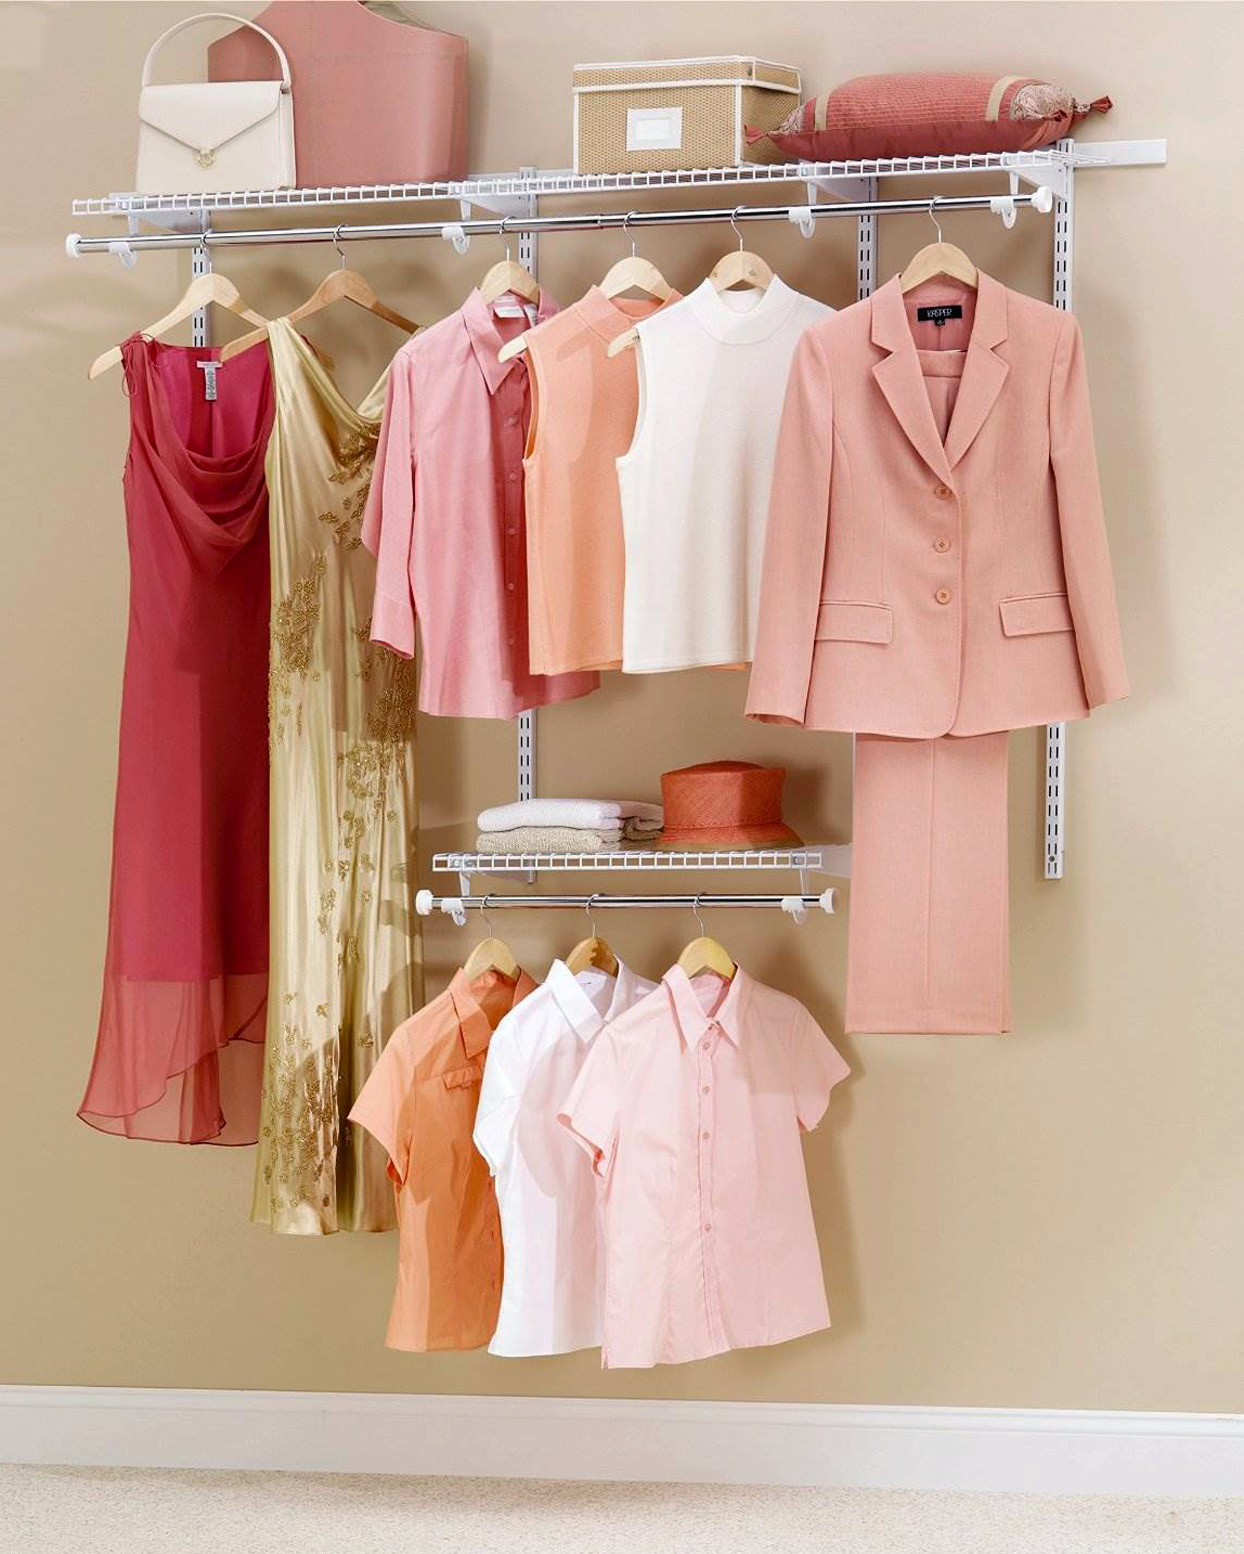 pink and white clothes hanging